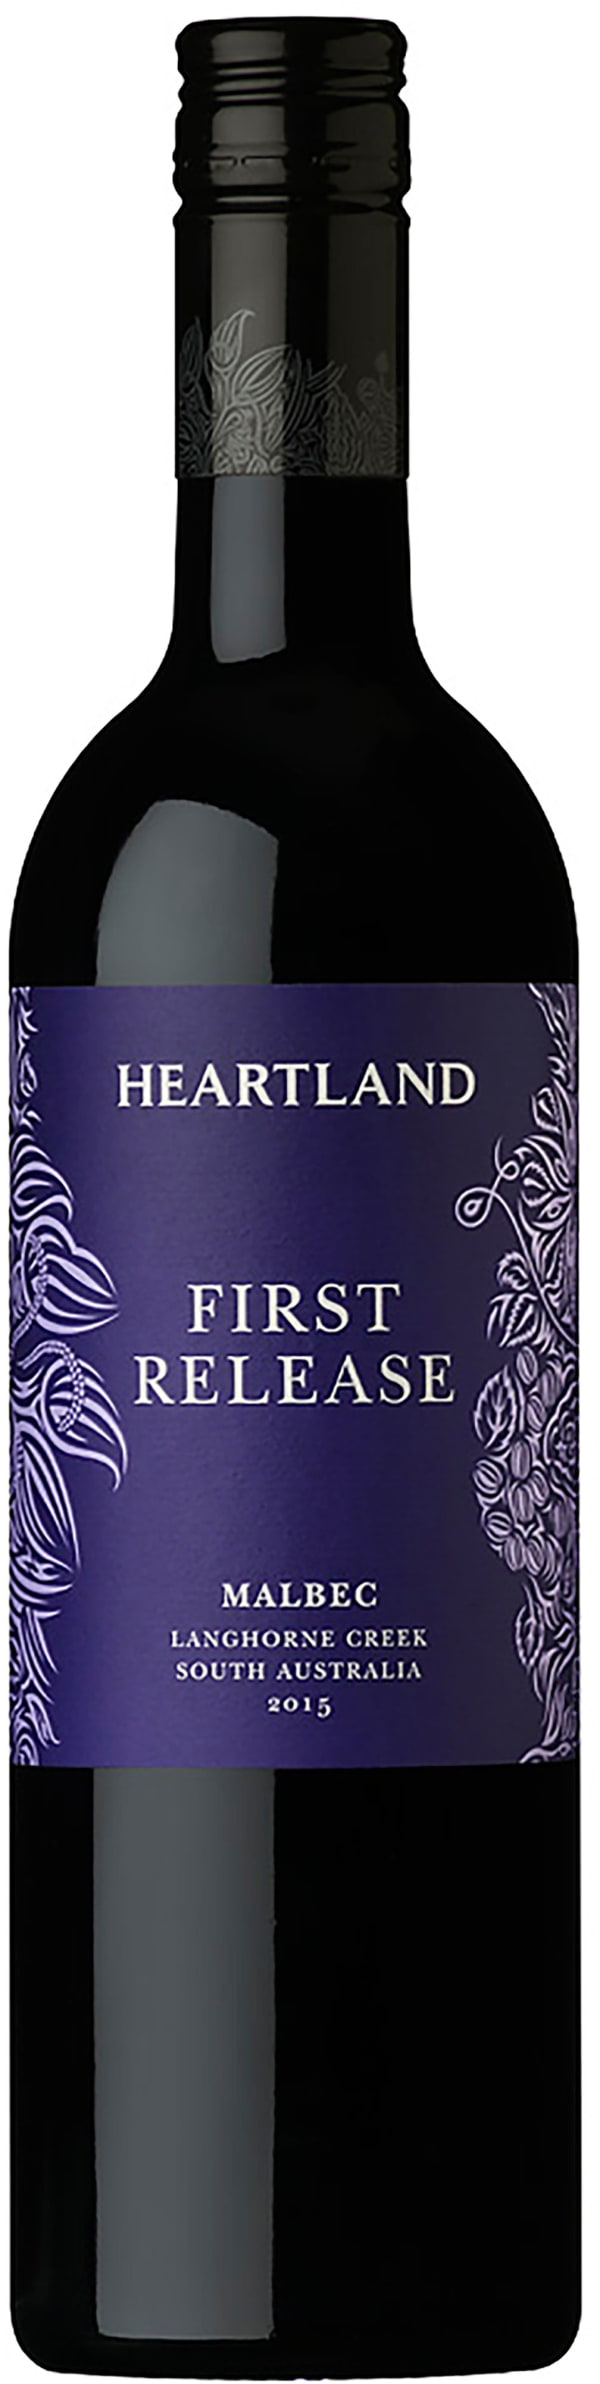 Heartland First Release Malbec 2015